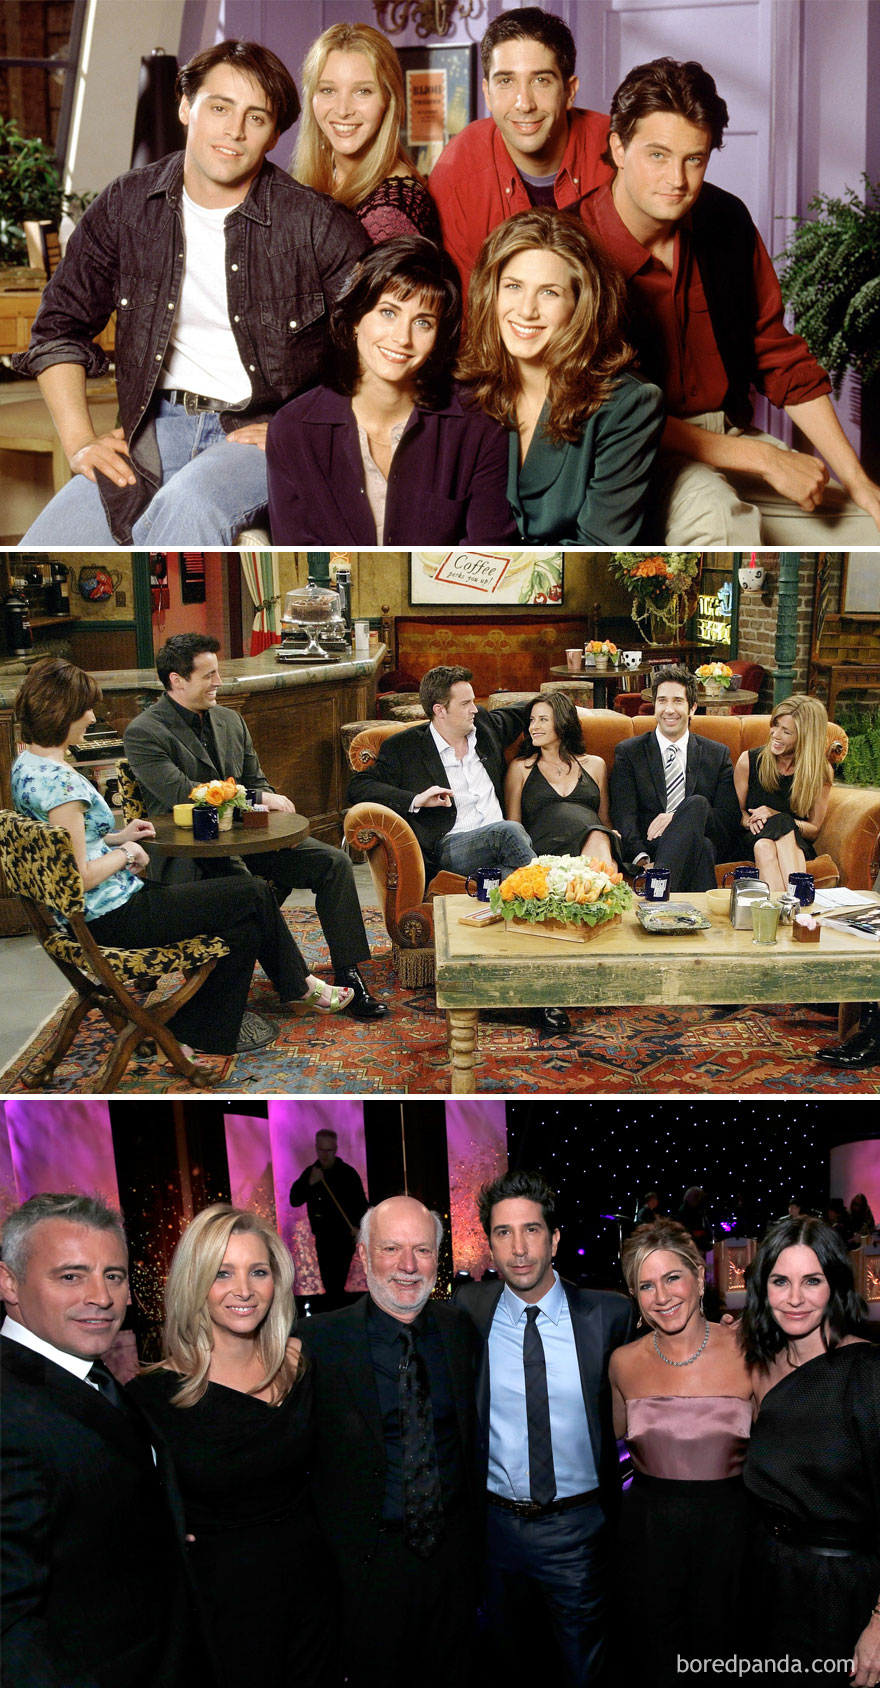 famous-tv-show-movie-reunions-2-5891bf297b568__880